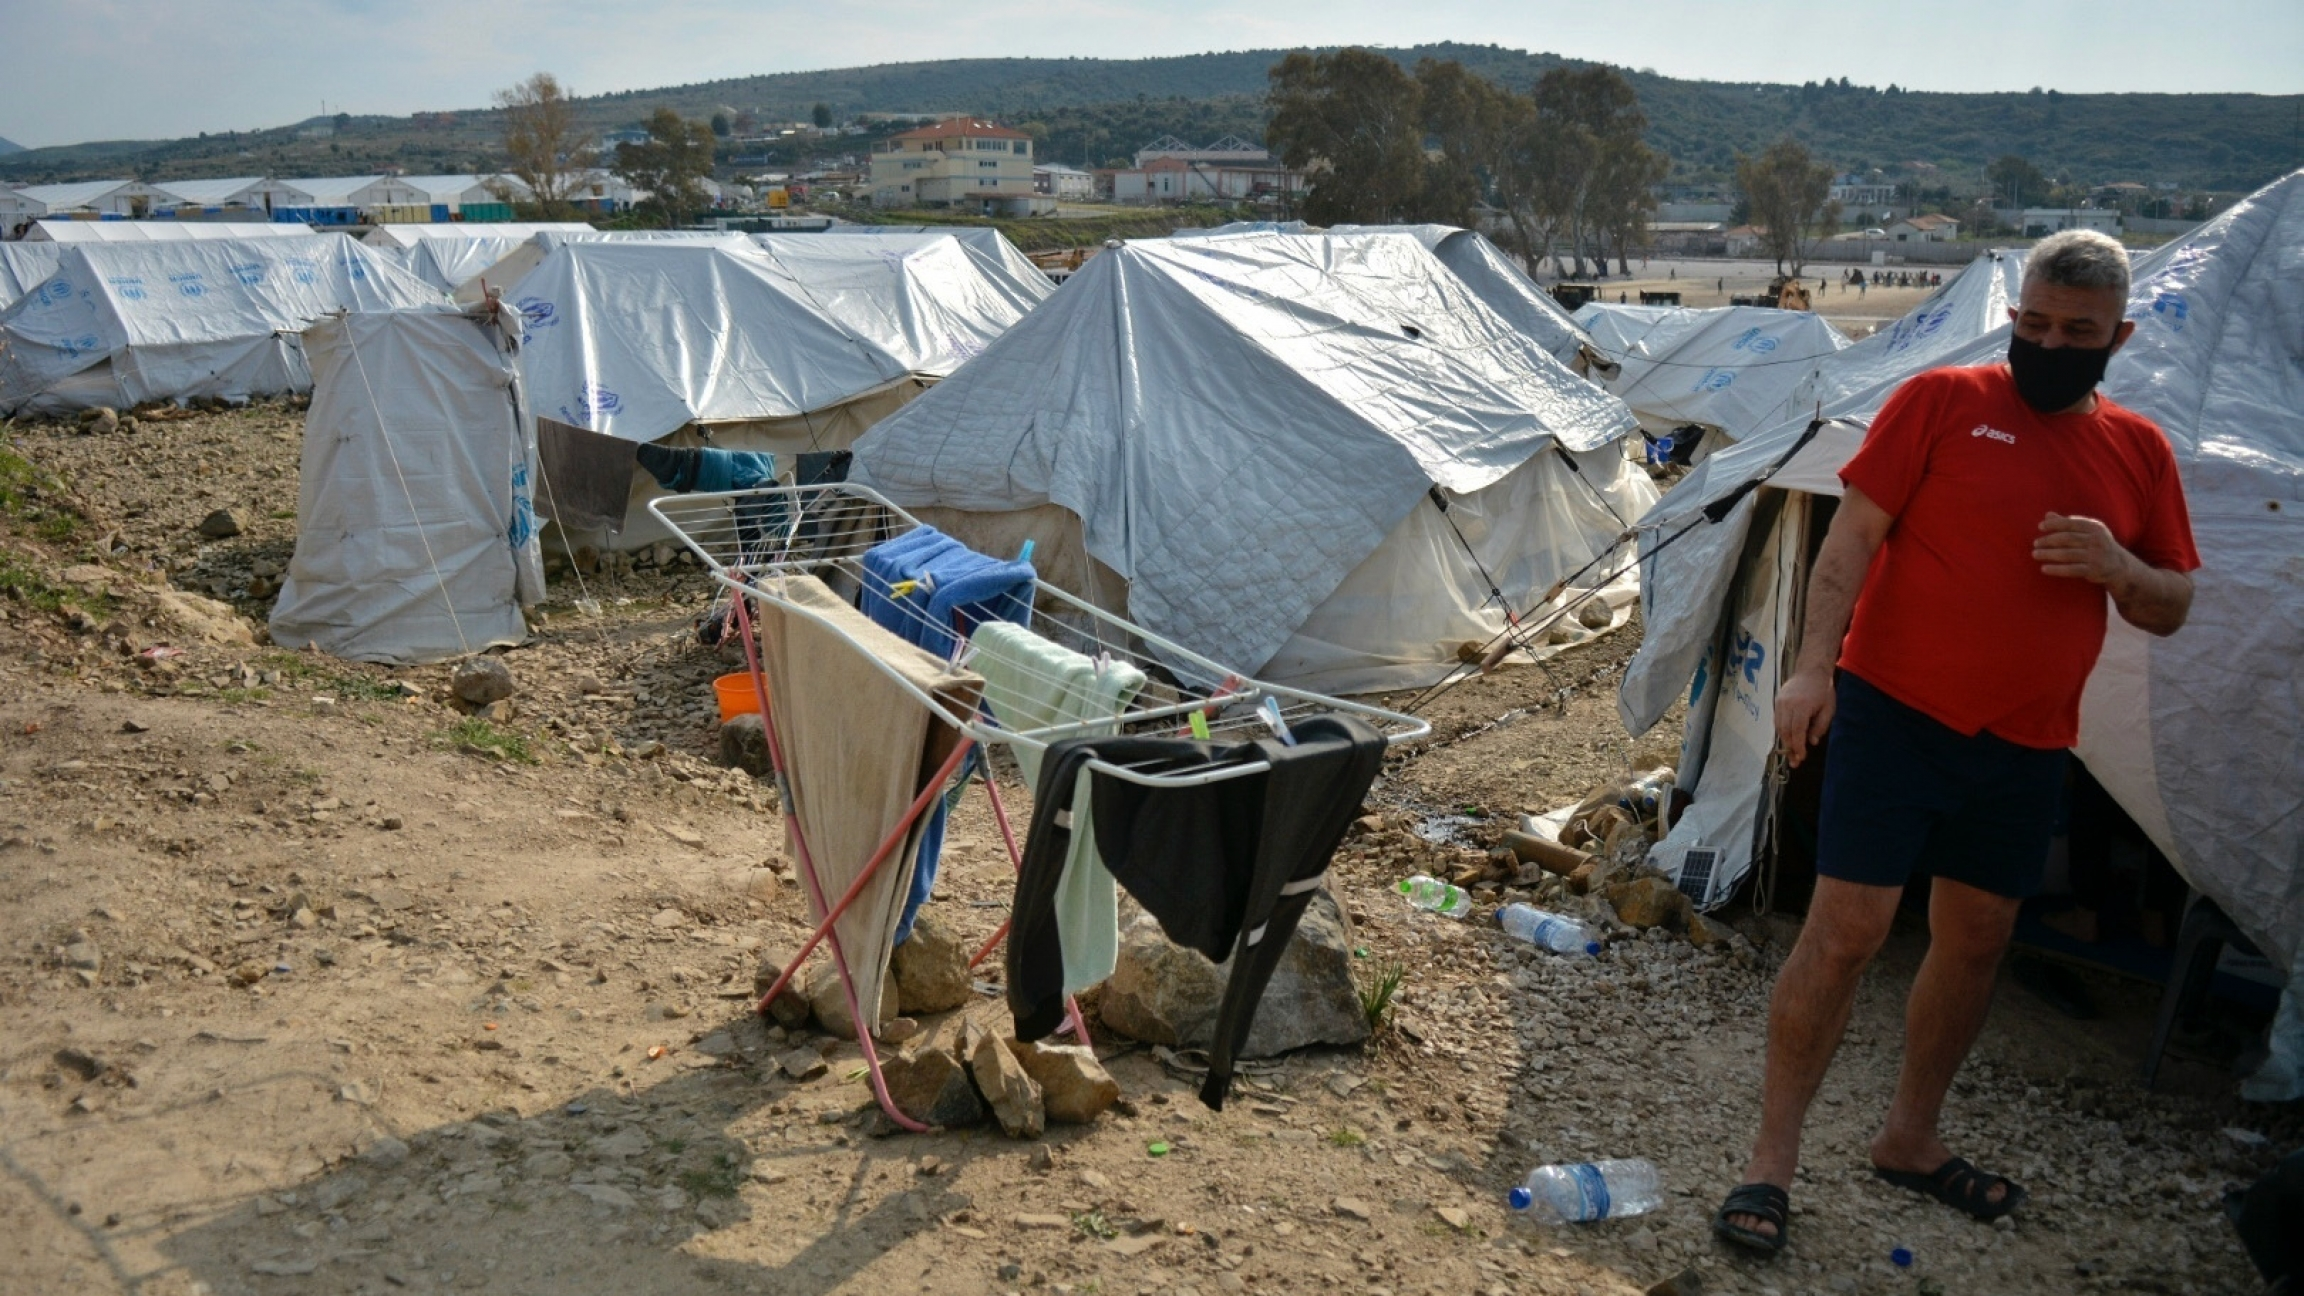 A migrant stands outside his tent at Karatepe refugee camp, on the northeastern Aegean island of Lesbos, Greece, March 29, 2021. The European Union's home affairs commissioner is visiting asylum-seeker facilities on the eastern Greek islands of Samos and